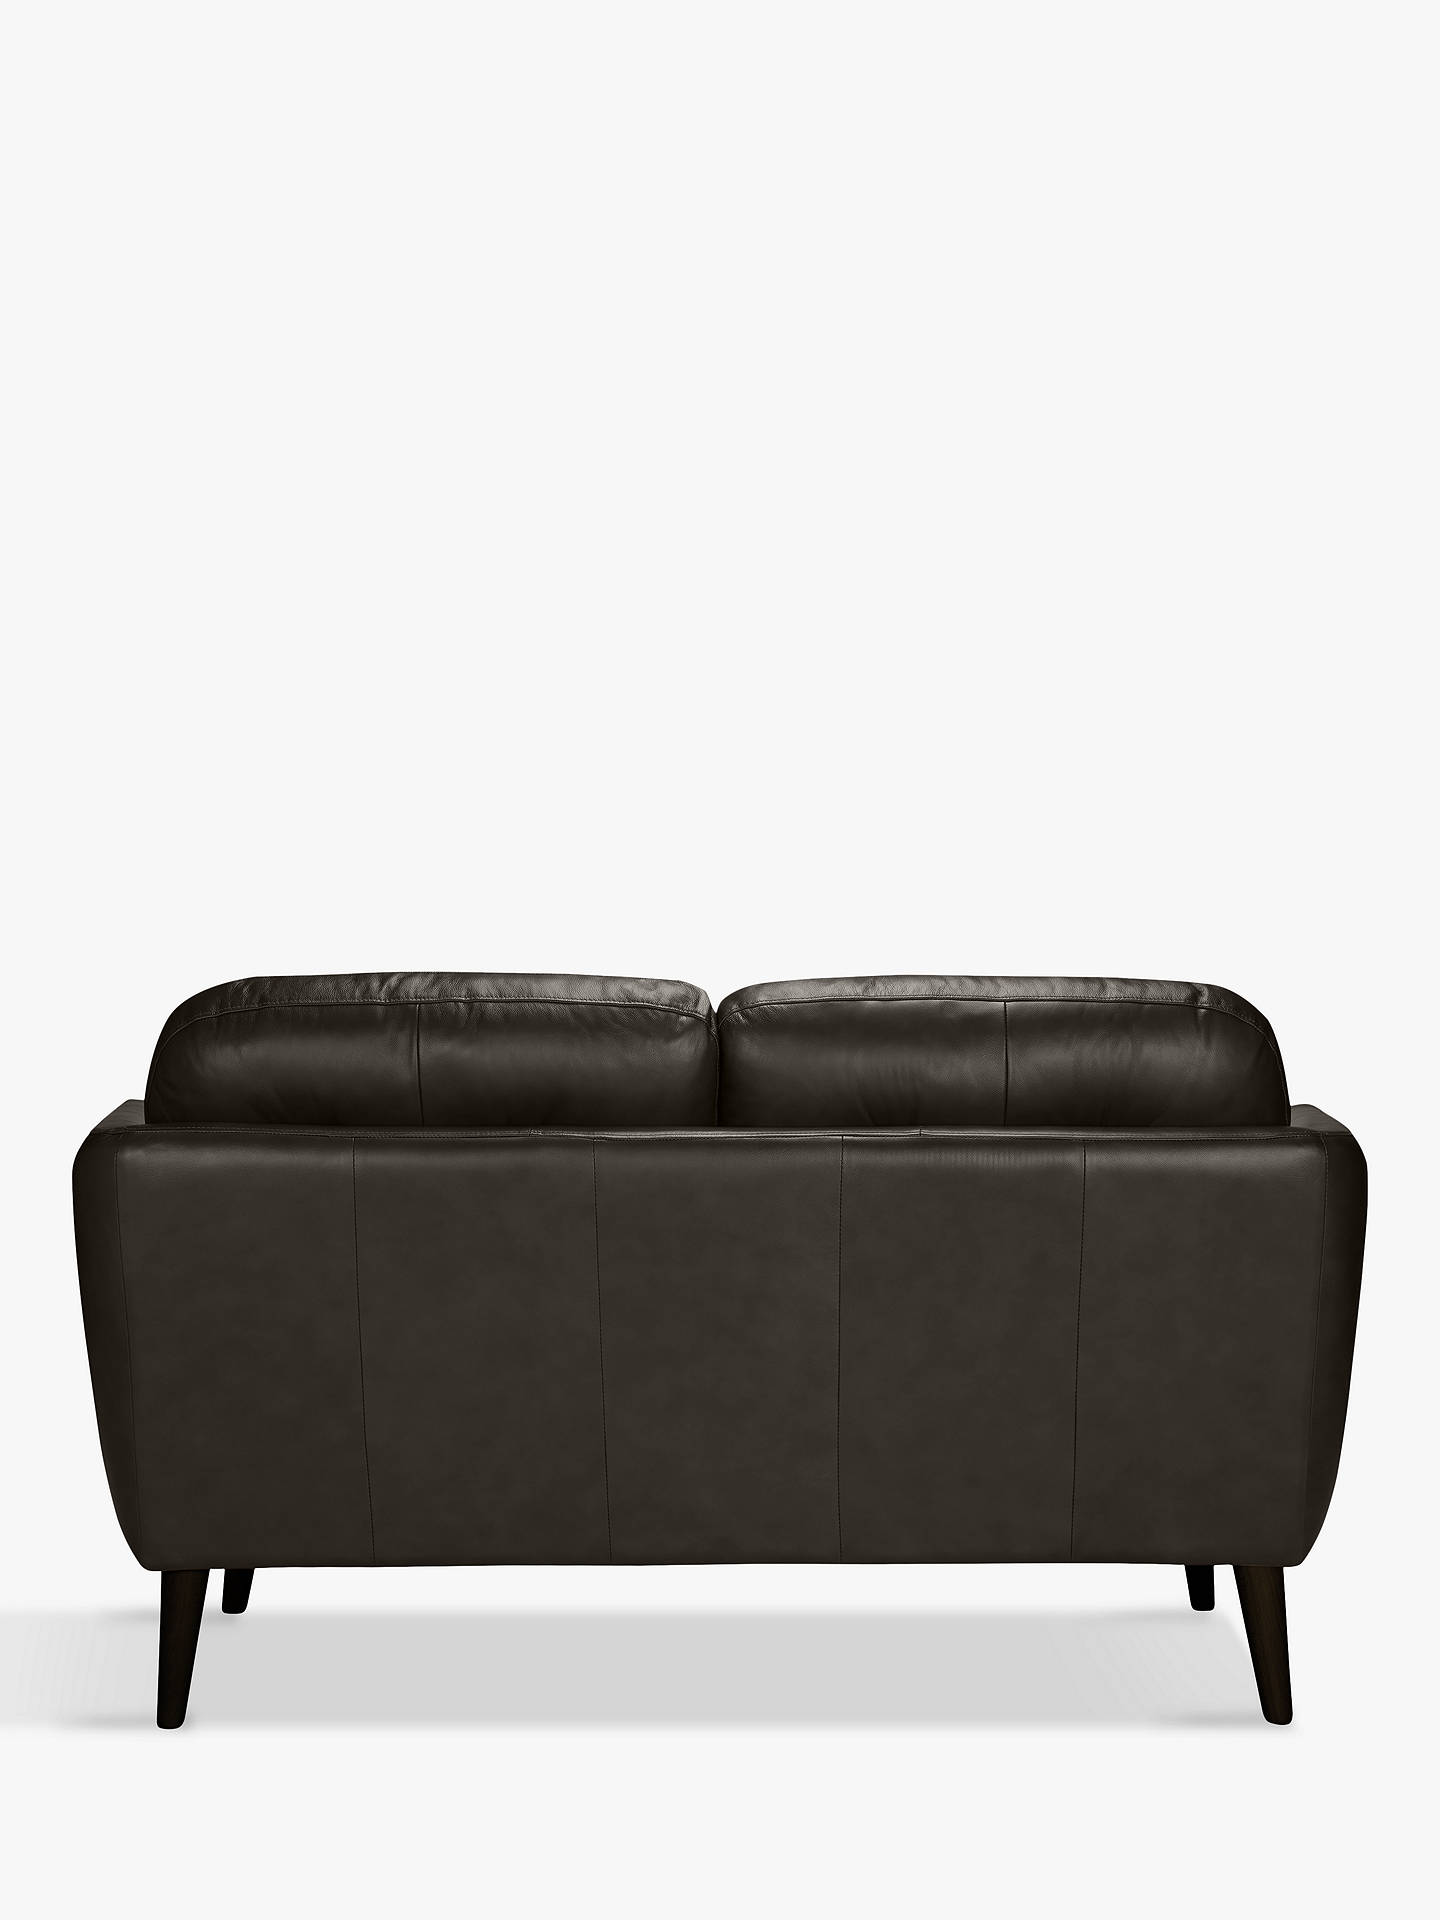 BuyHouse by John Lewis Arlo Small 2 Seater Leather Sofa, Milan Taupe, Light Leg Online at johnlewis.com